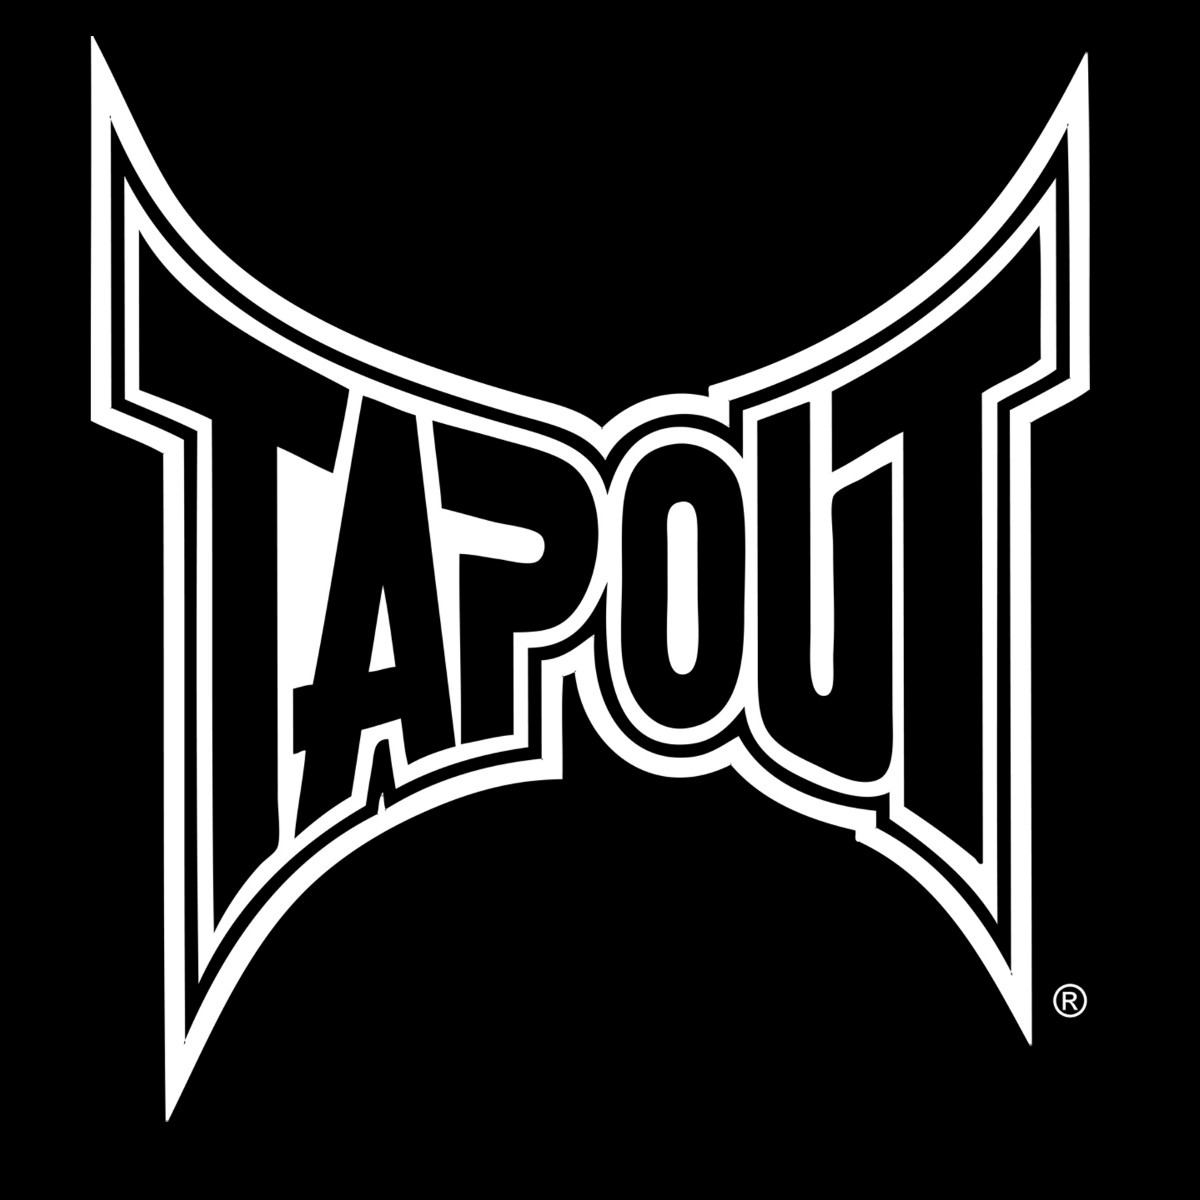 Ufc Tapout 2: Camisa Tapout Ufc Mma Hollister Print G